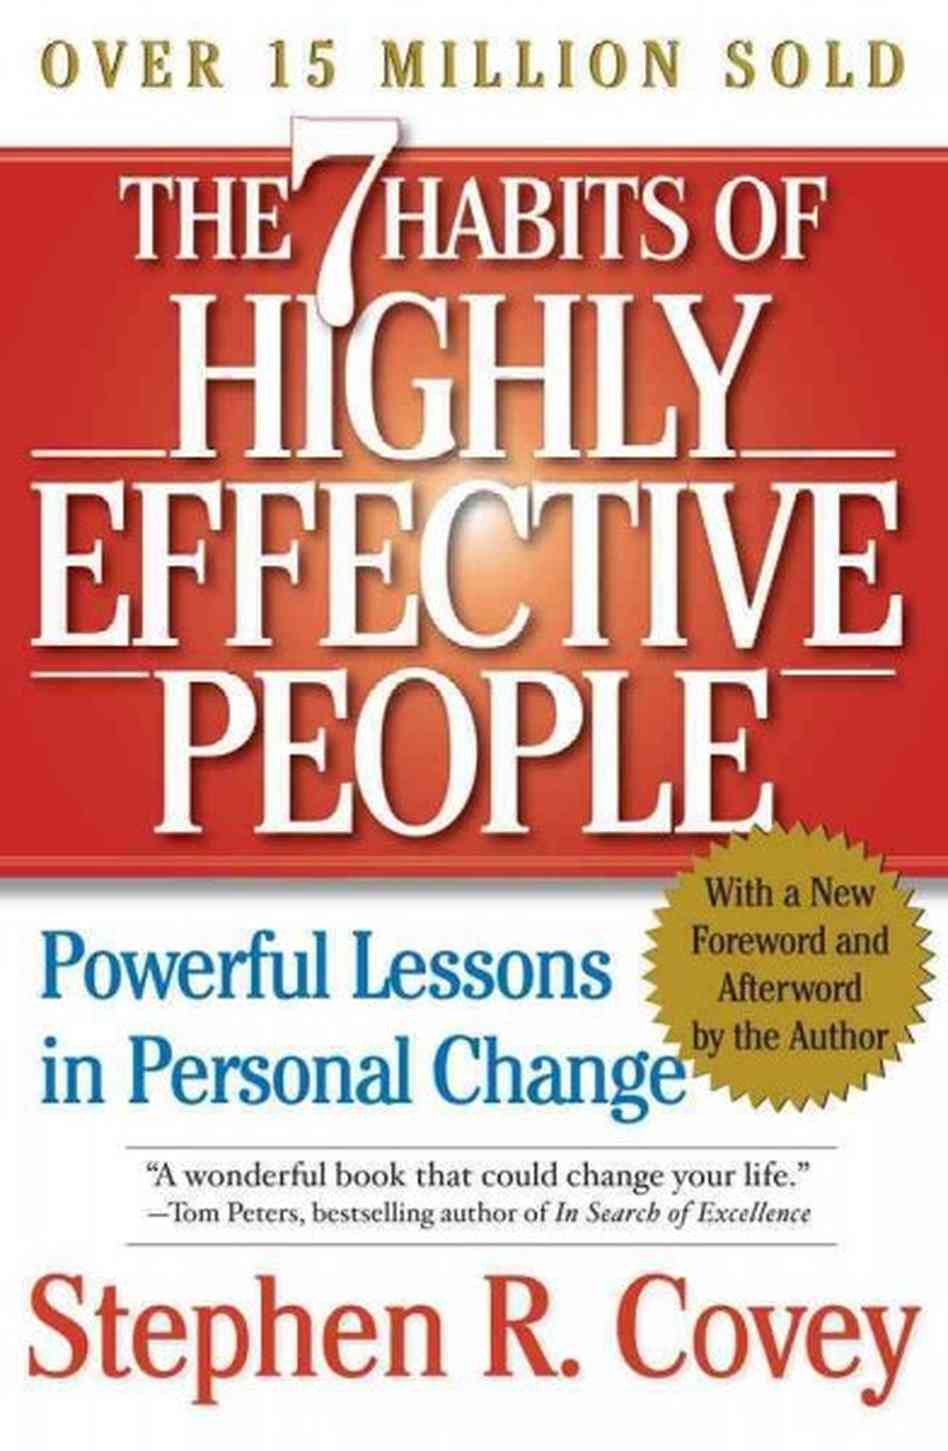 Where can i find pdf version of the book 'seven habits of highly.